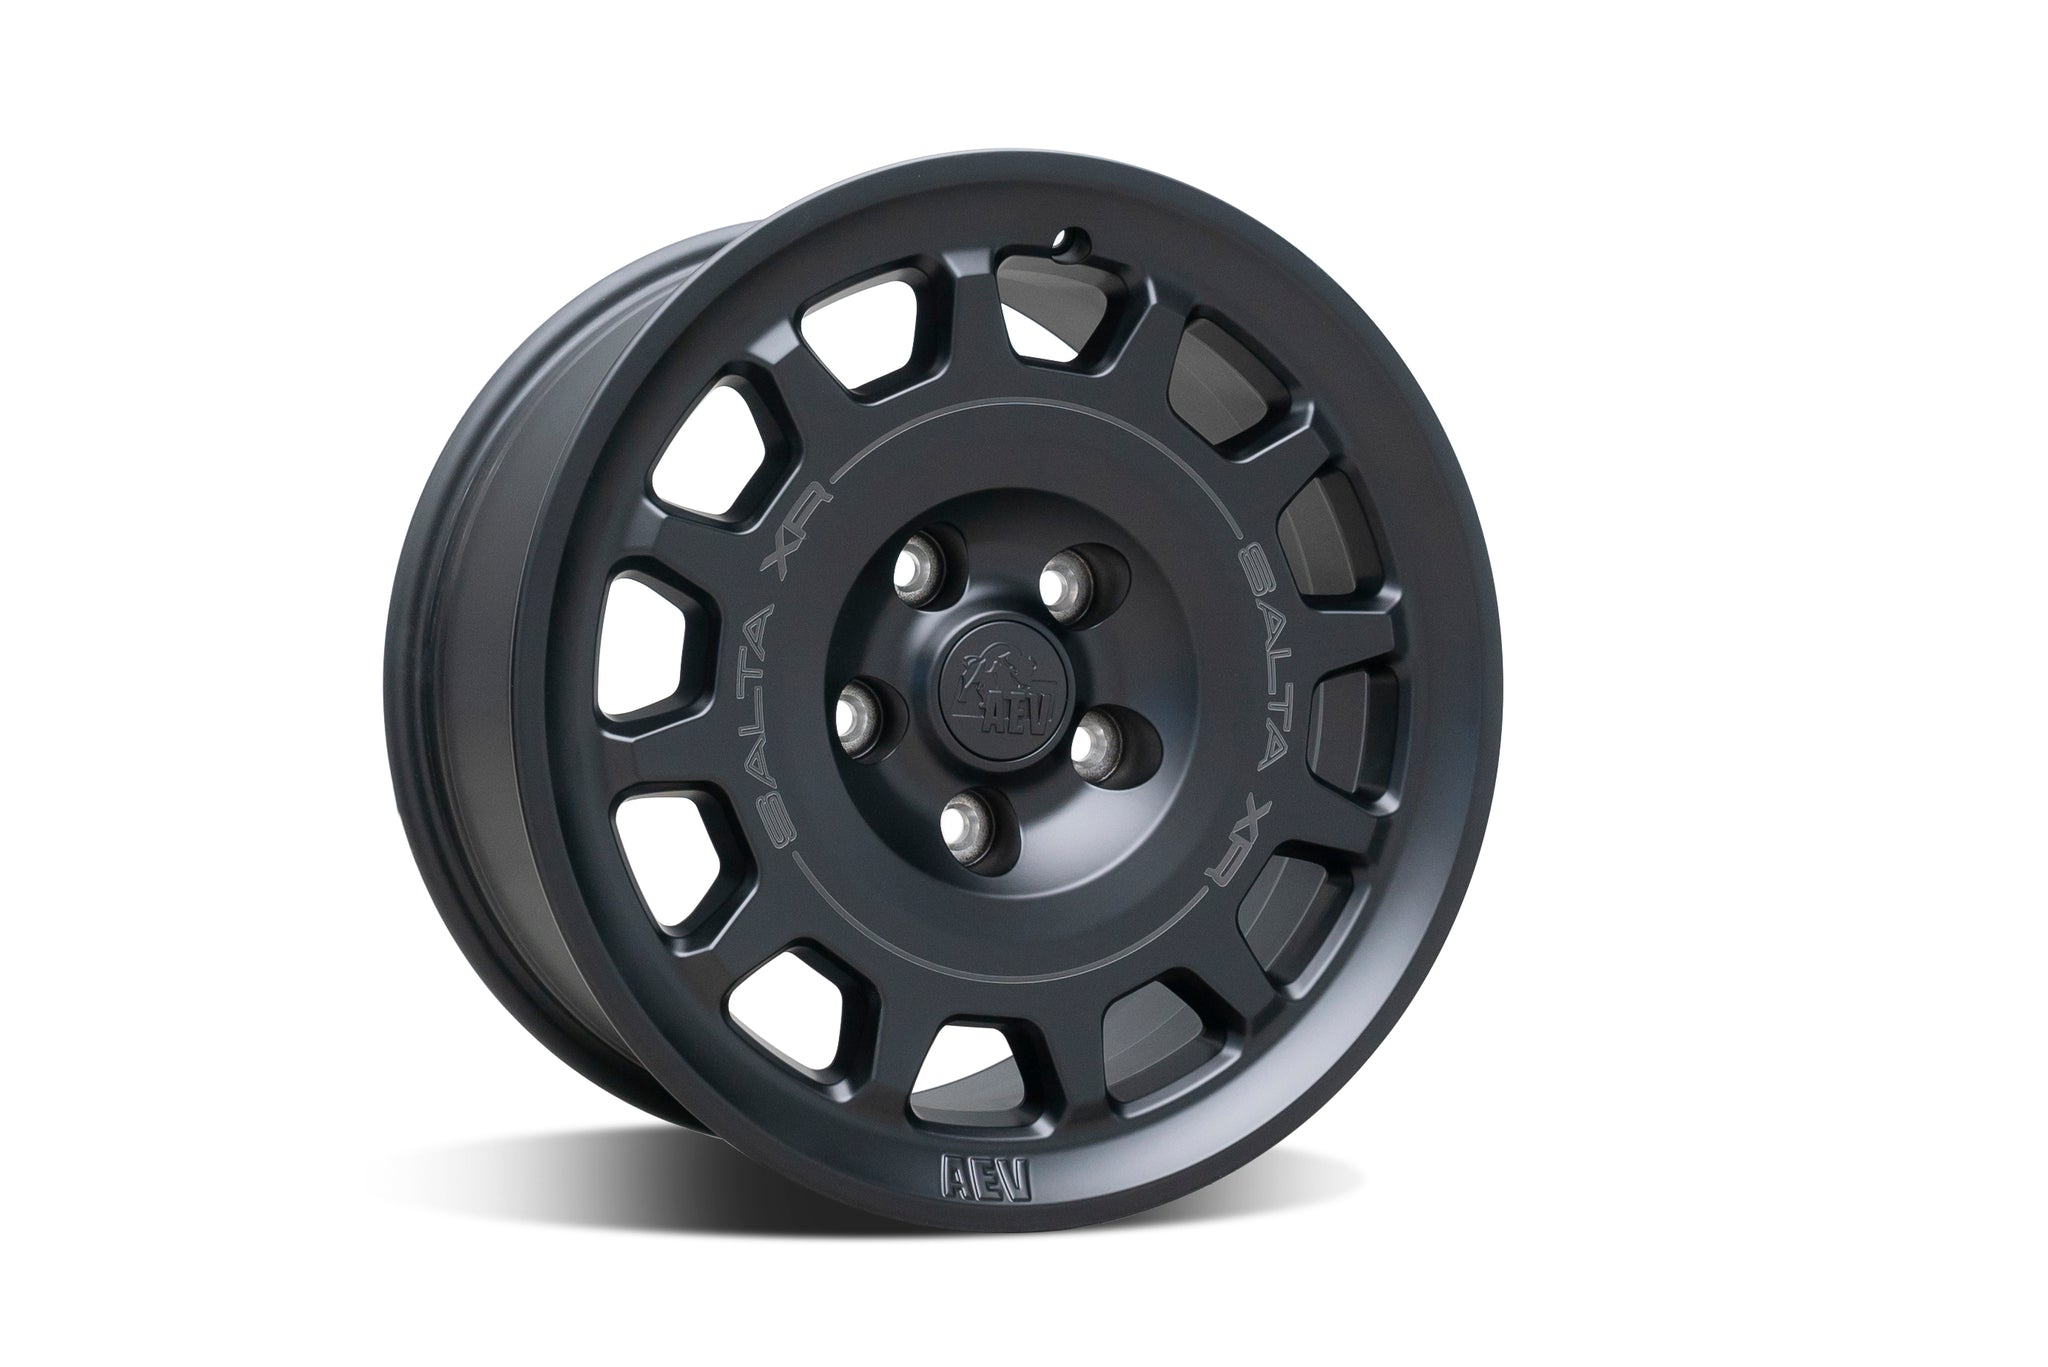 AEV Salta XR Wheel for JL Wrangler/Gladiator